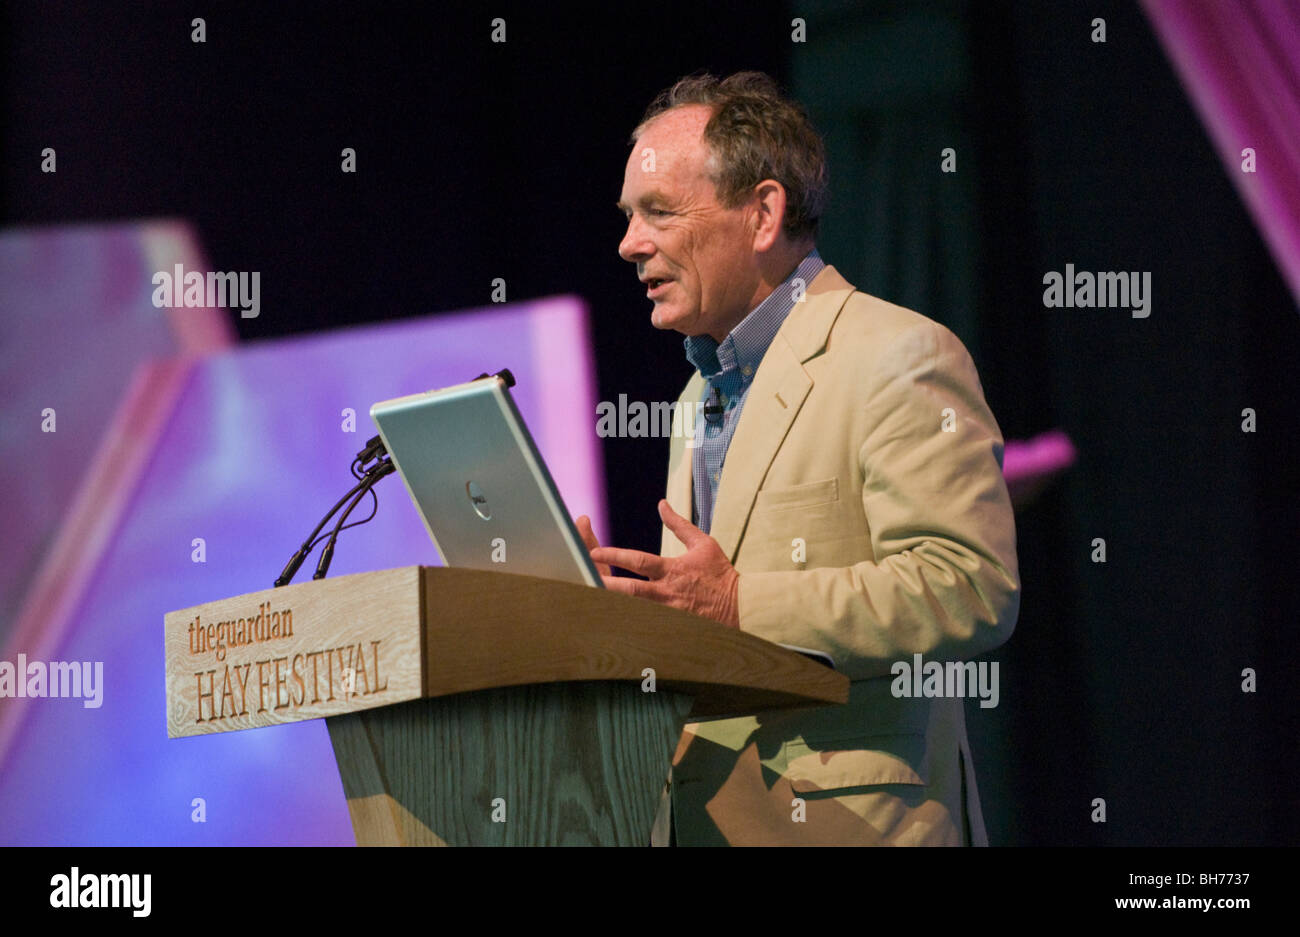 Simon Jenkins journalist and National Trust chairman talking about Wales at Hay Festival 2009. - Stock Image